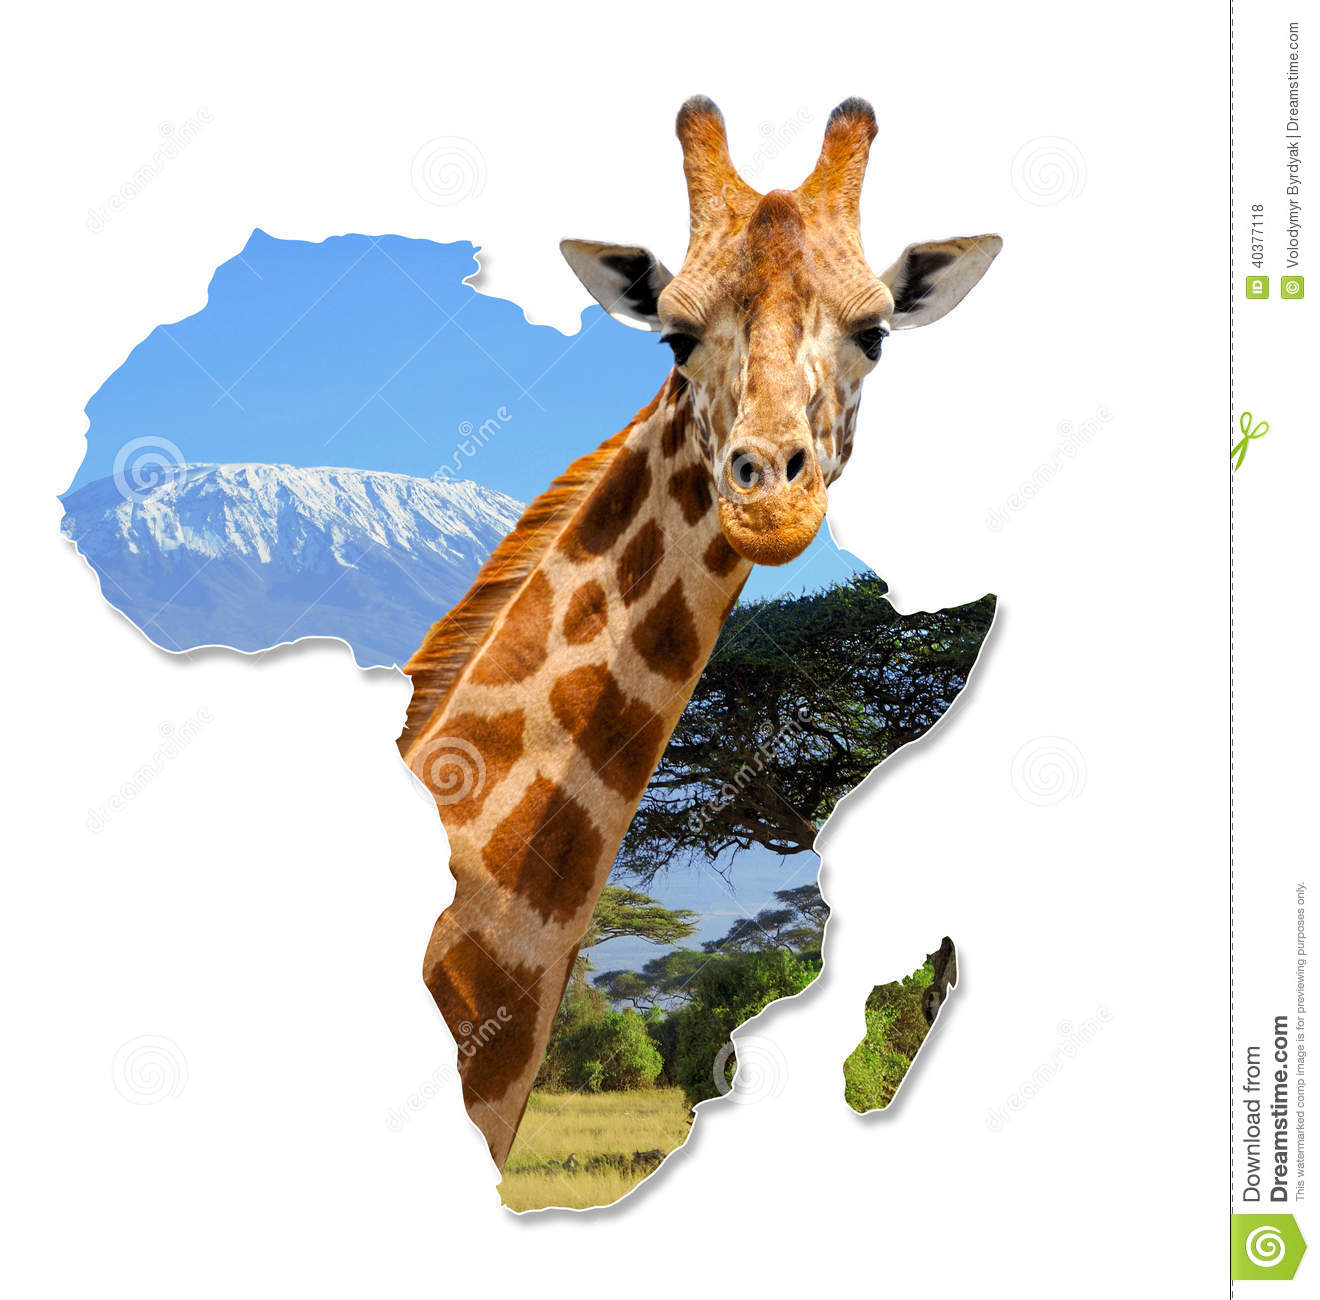 Africa Wildlife Map Design stock photo Image of ancient 40377118